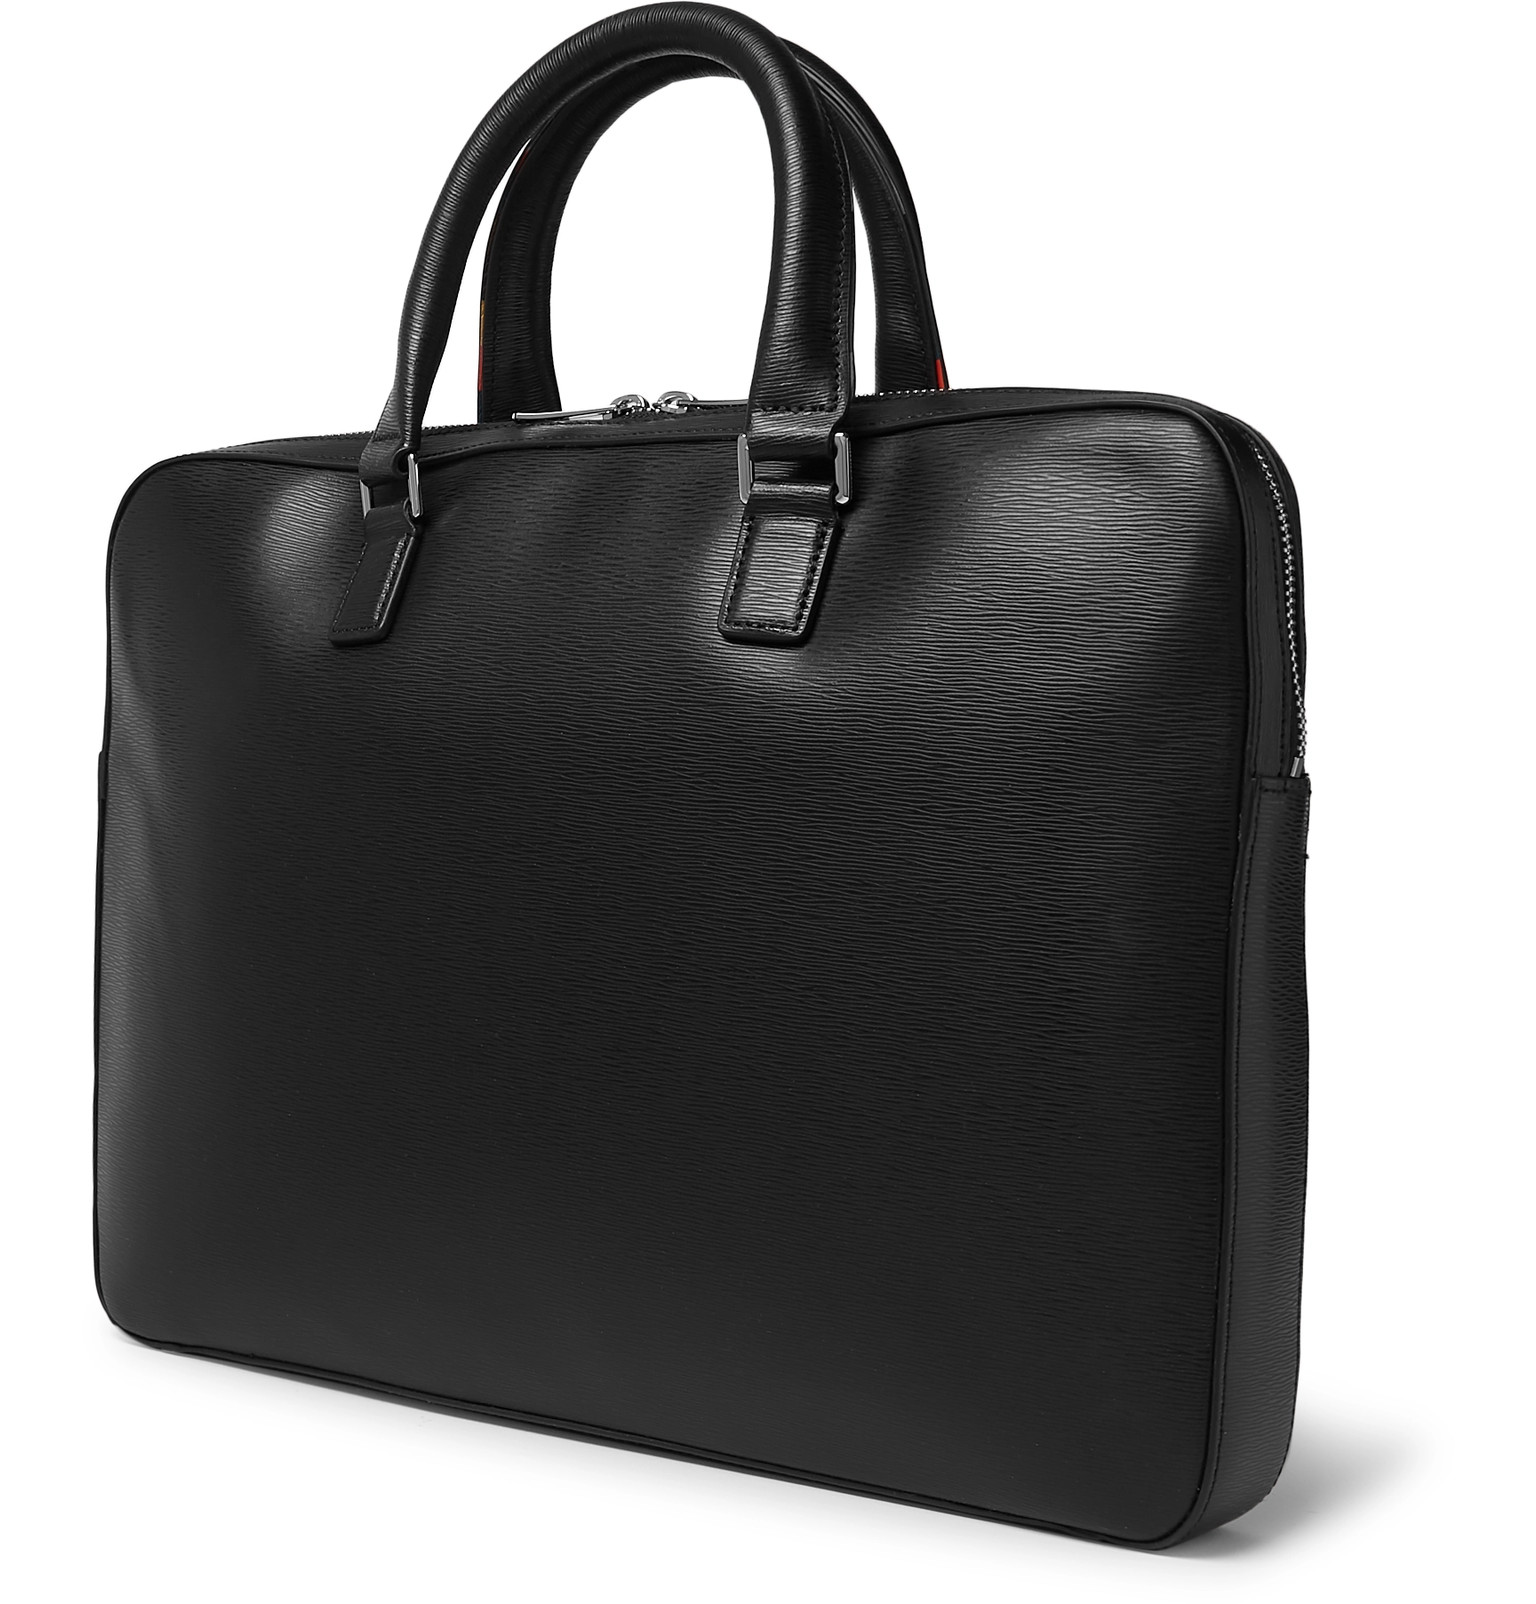 Tipped Textured Paul Contrast Briefcase Smith Leather URYgE